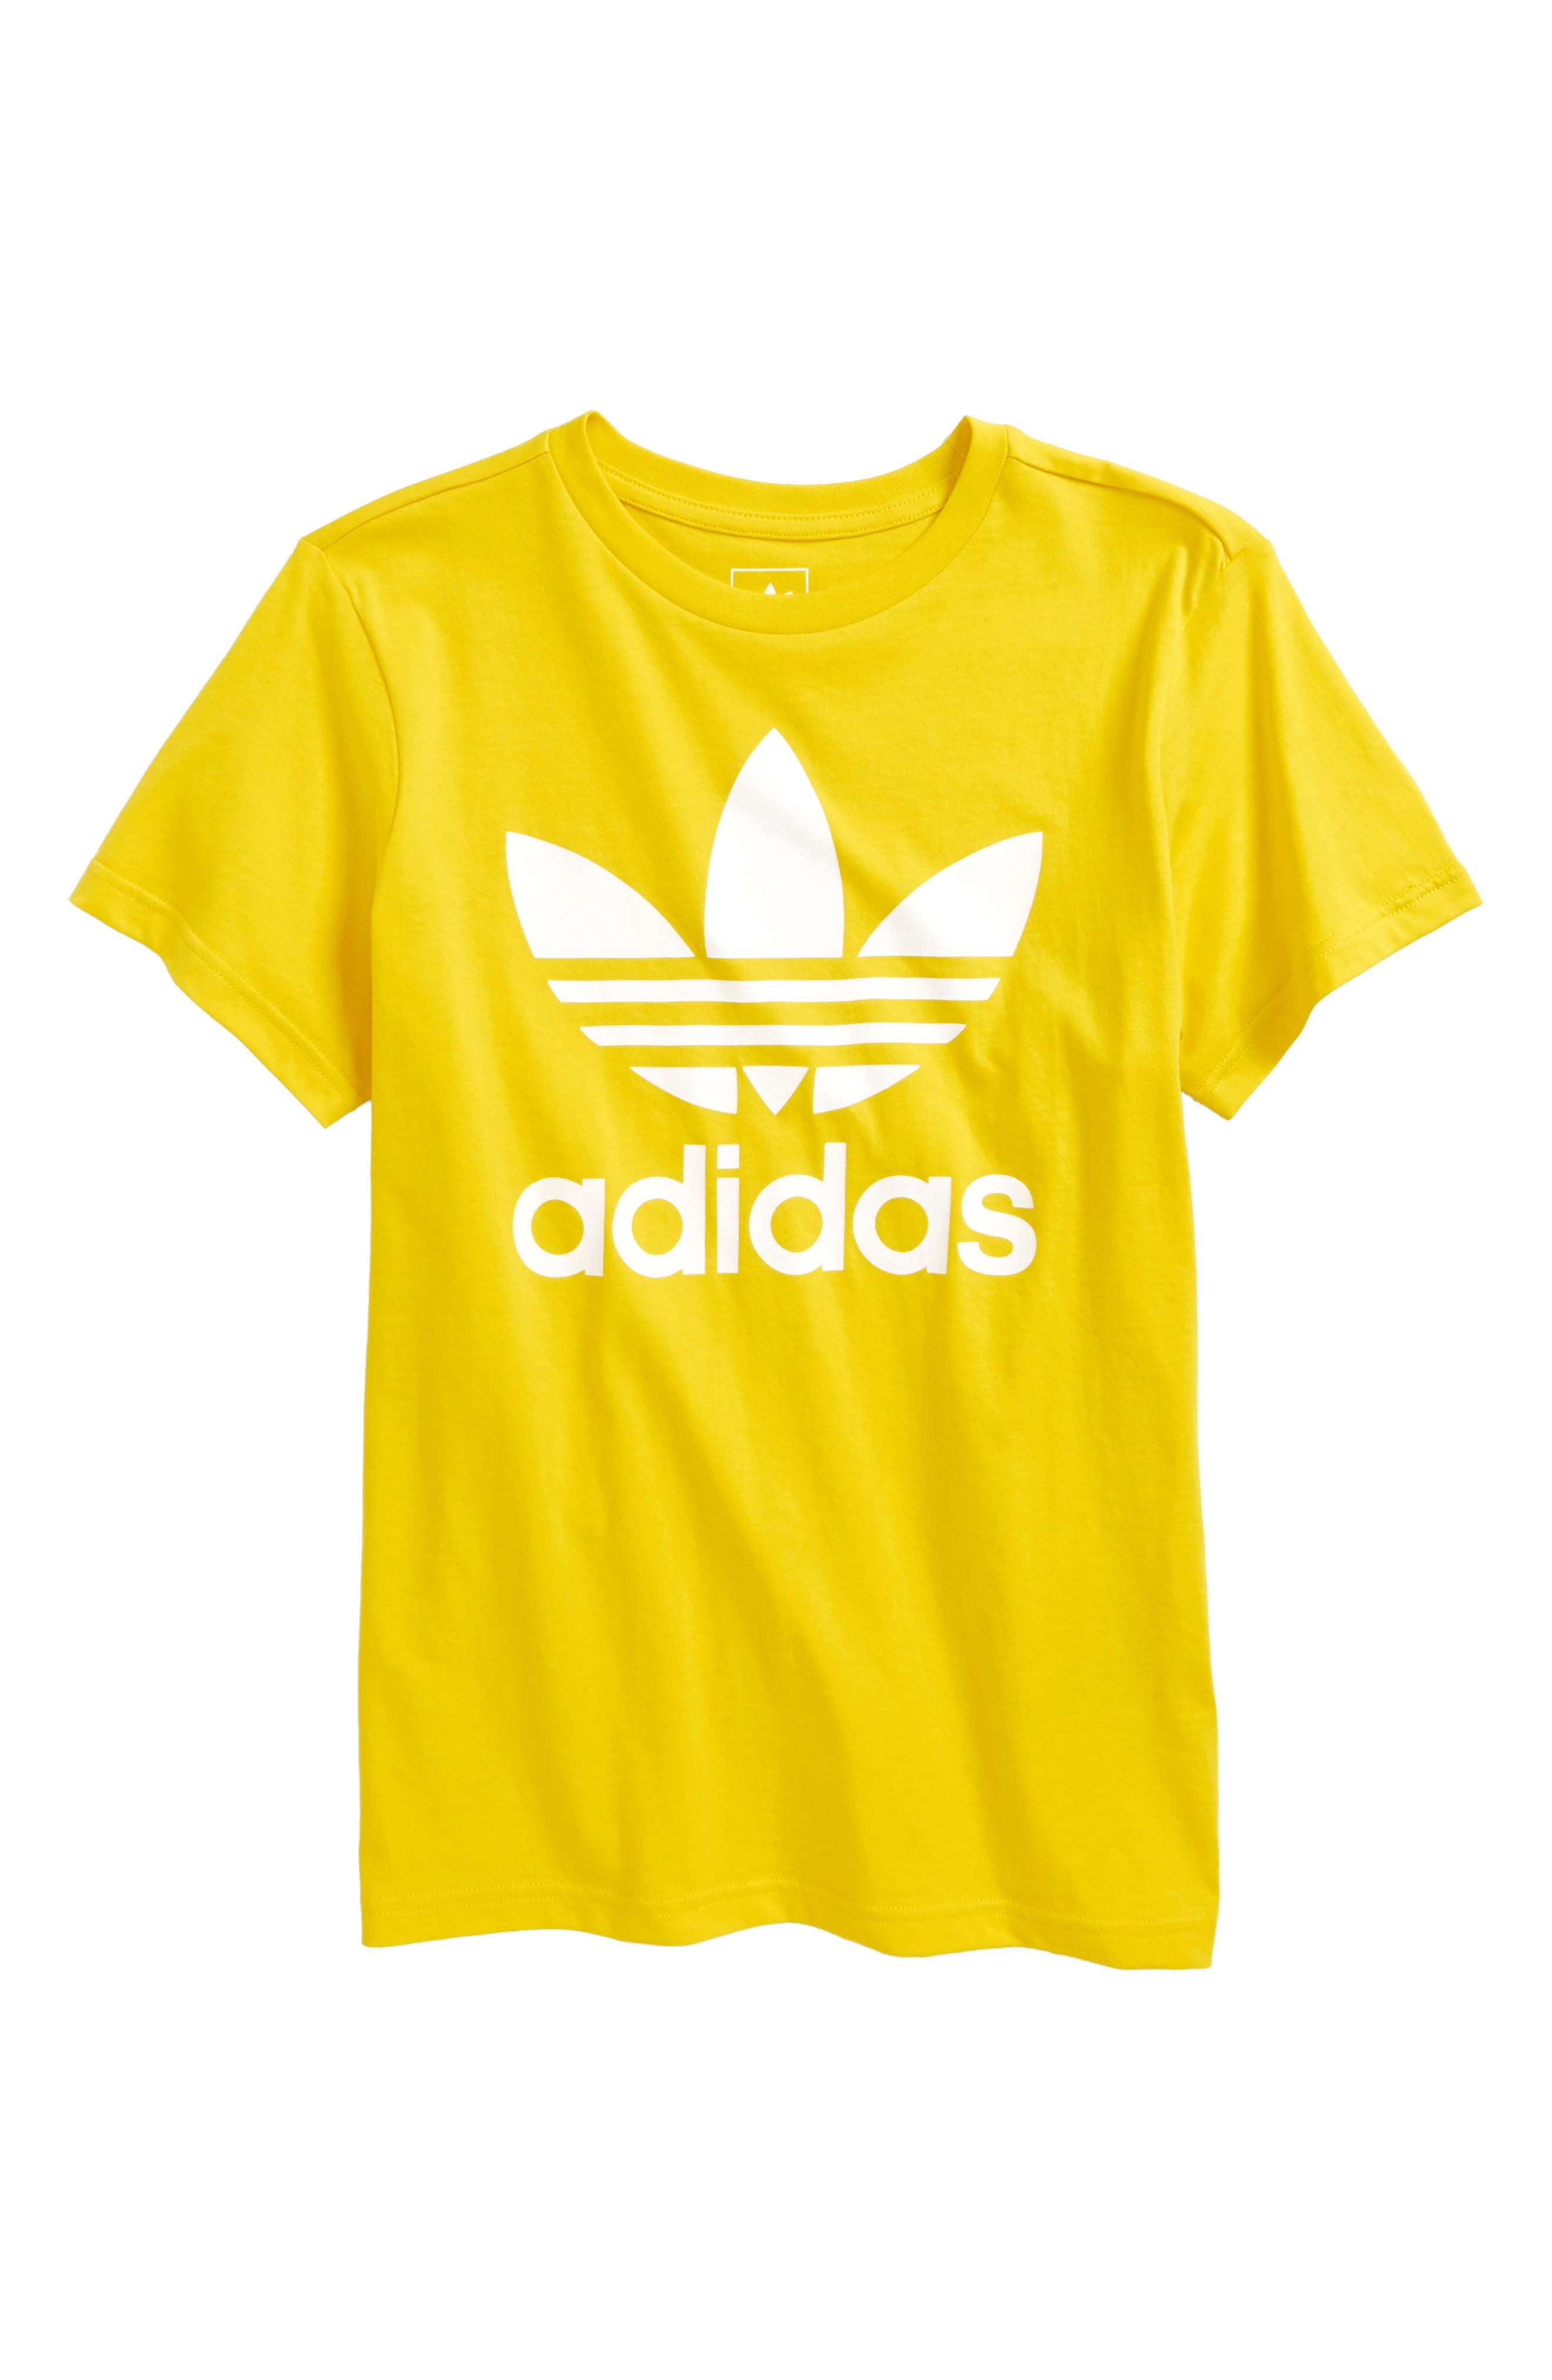 adidas Trefoil Logo Graphic Tee,                             Main thumbnail 1, color,                             734